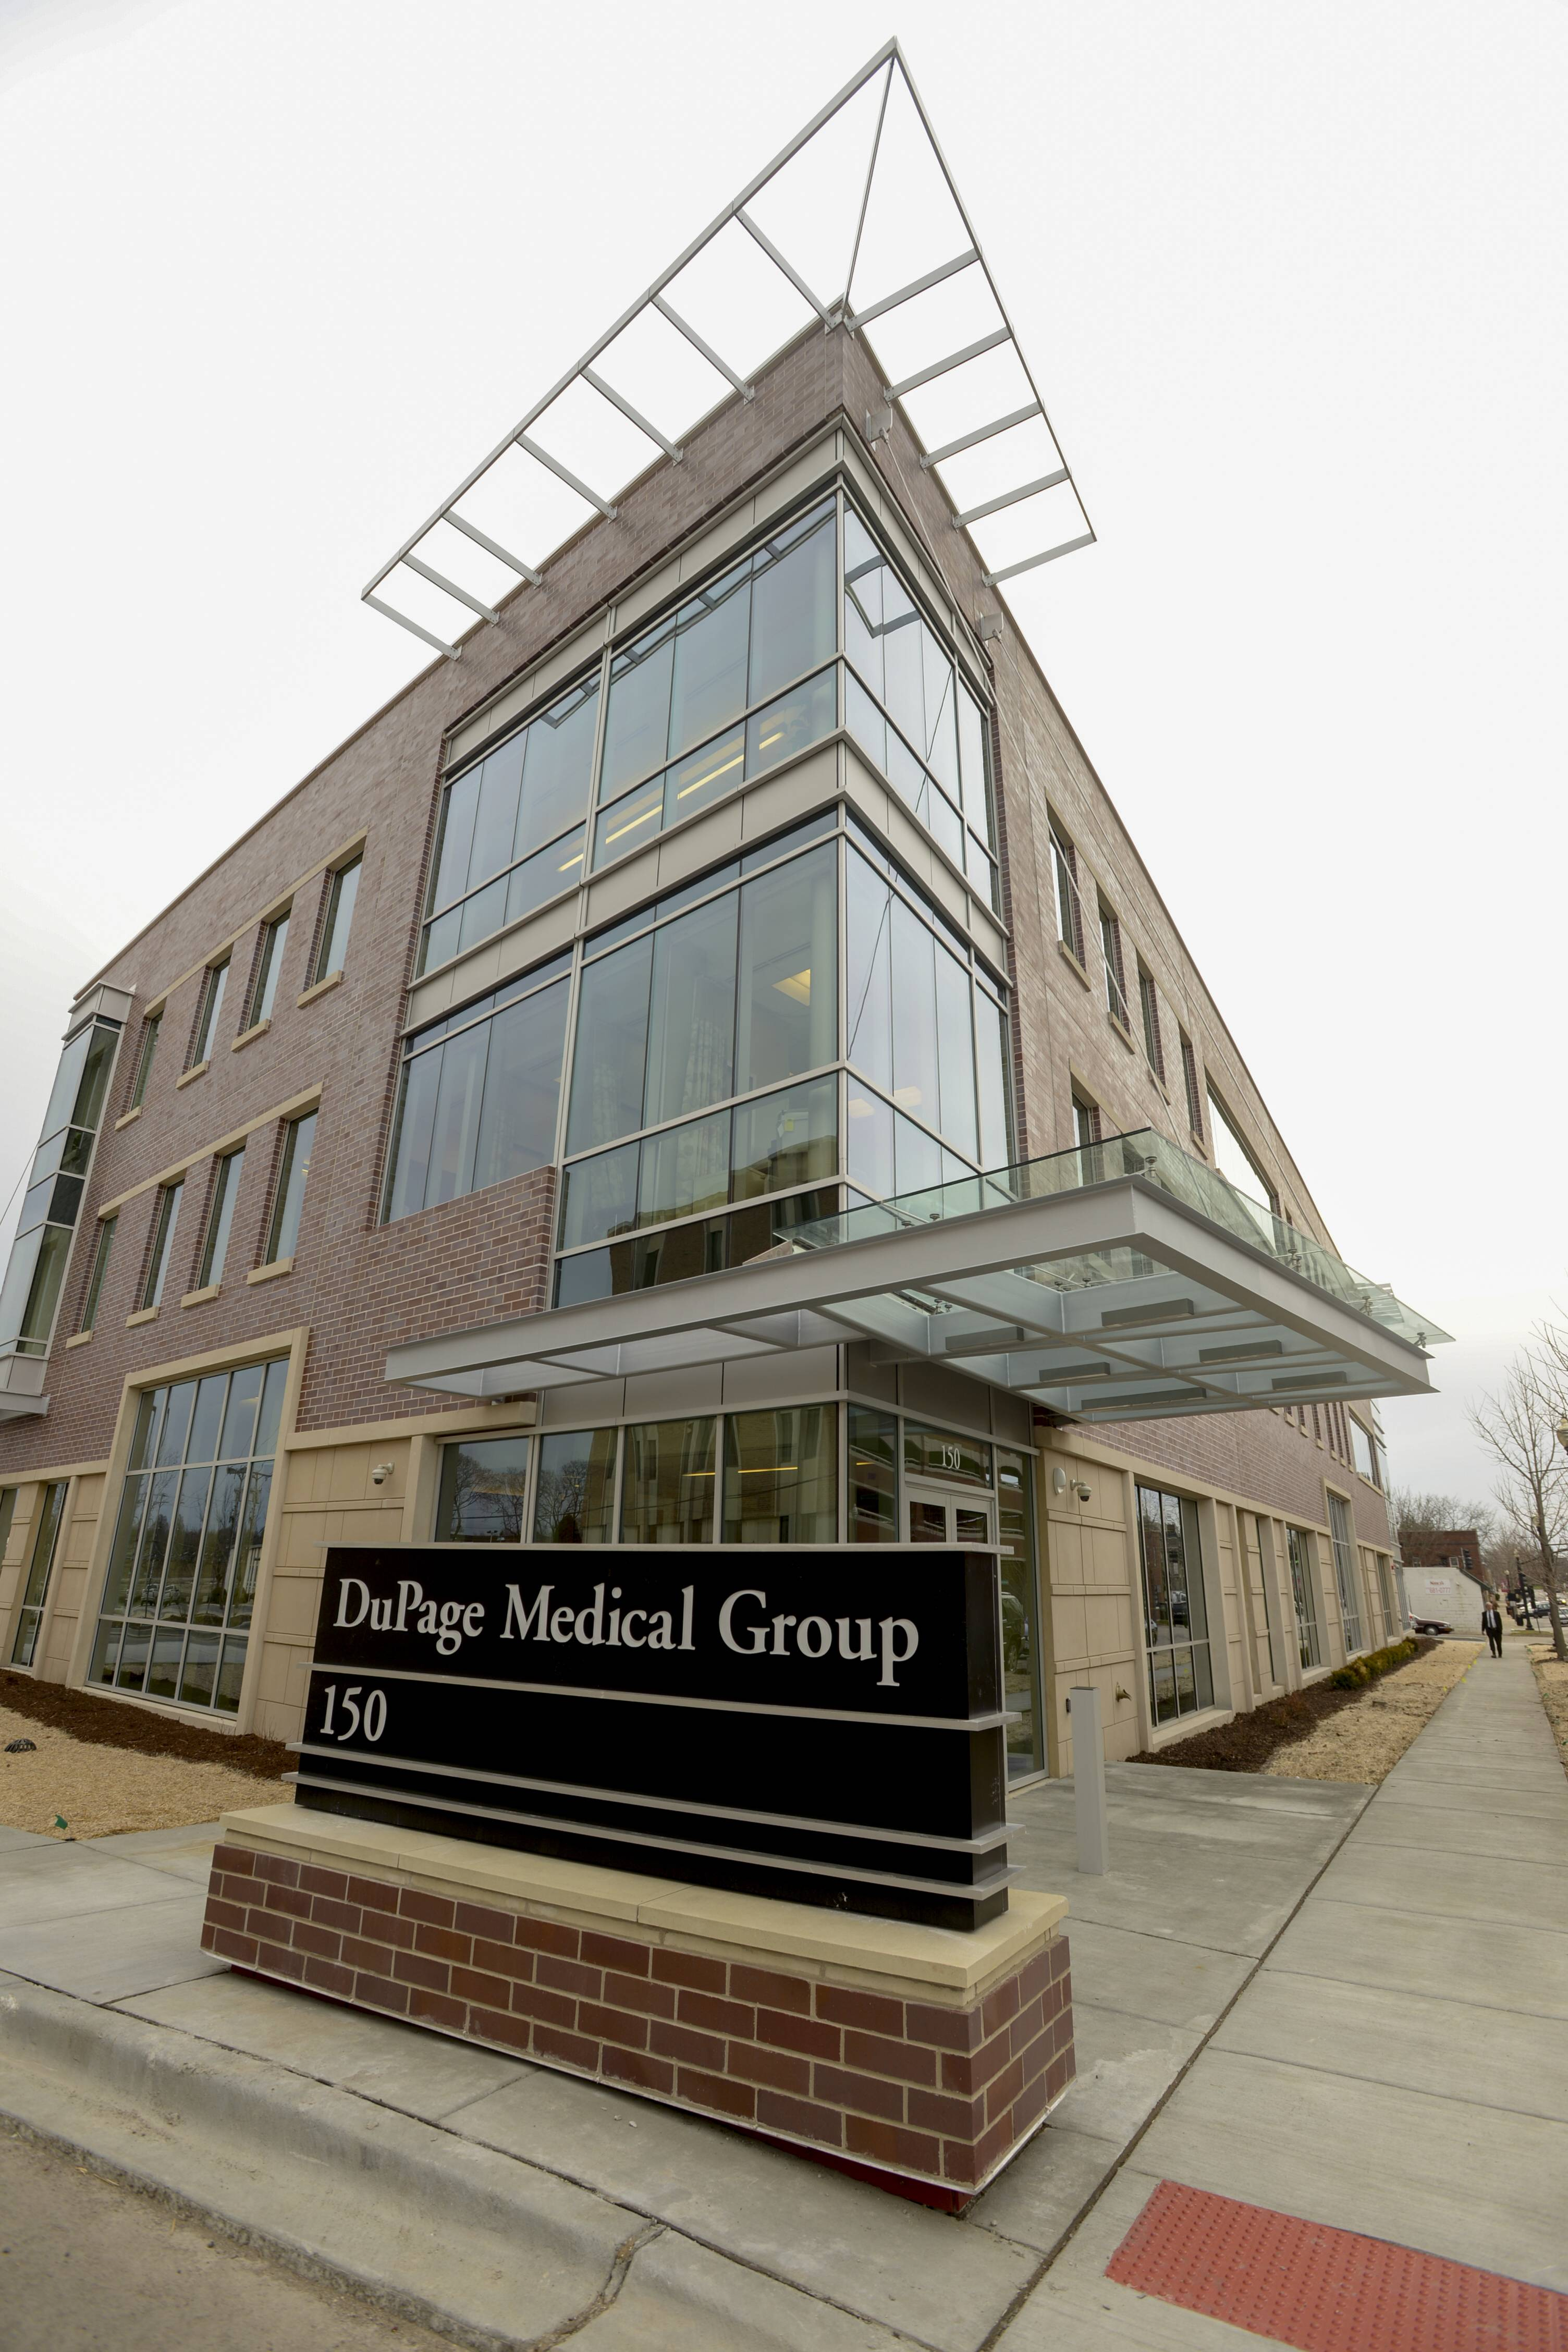 DuPage Medical Group building in Wheaton opens Monday. The 40,000-square-foot facility at 150 E. Willow Ave will offer family medicine, internal medicine and obstetrics and gynecology.